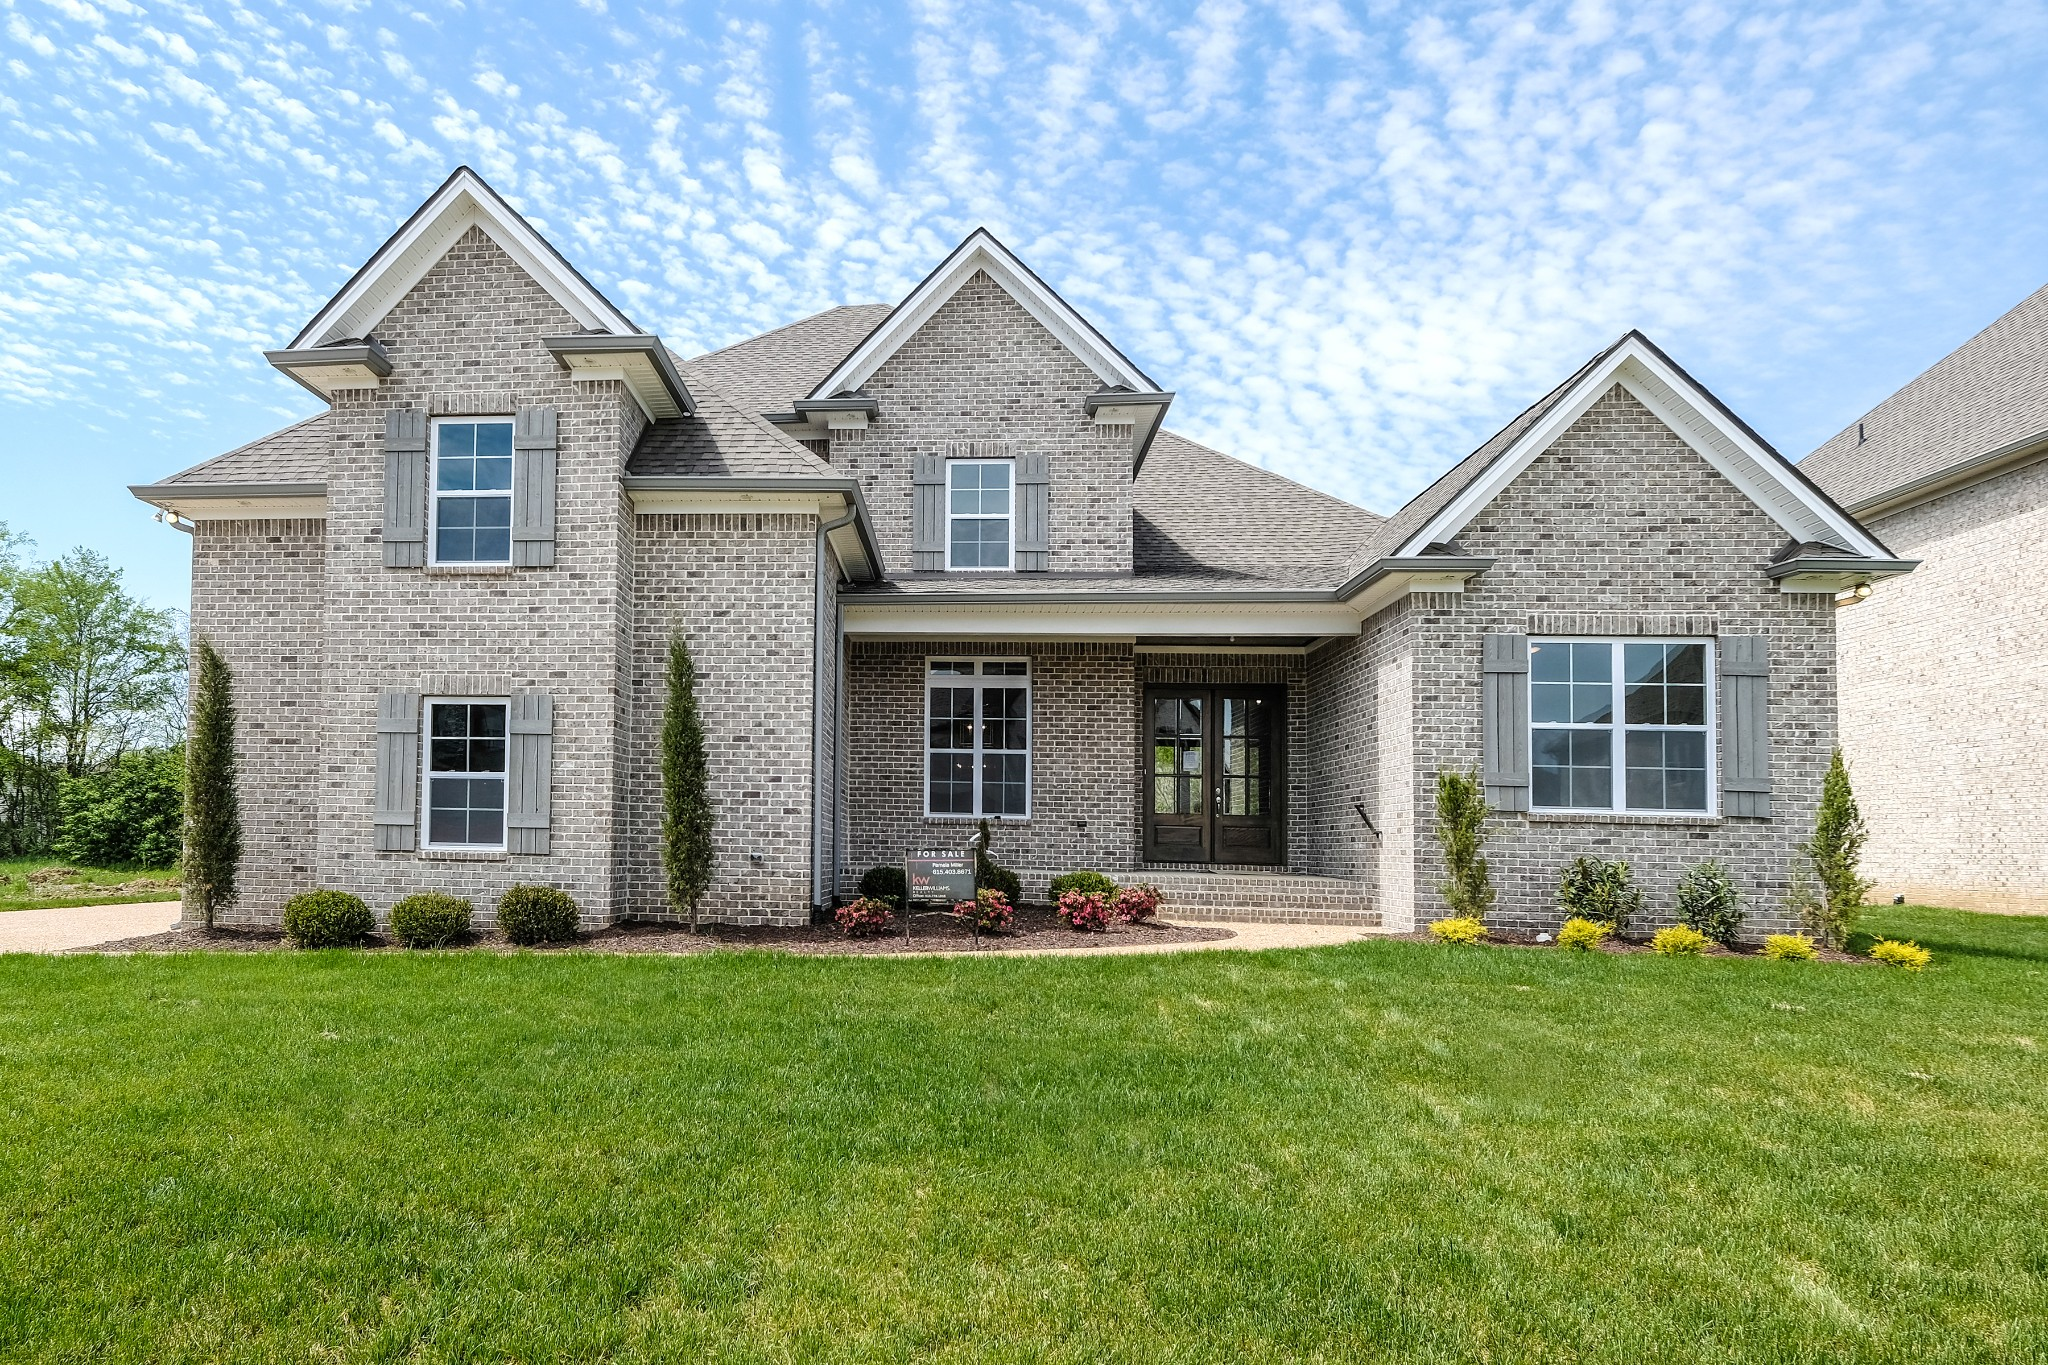 2057 Autumn Ridge Way (Lot 244), Spring Hill, TN 37174 - Spring Hill, TN real estate listing